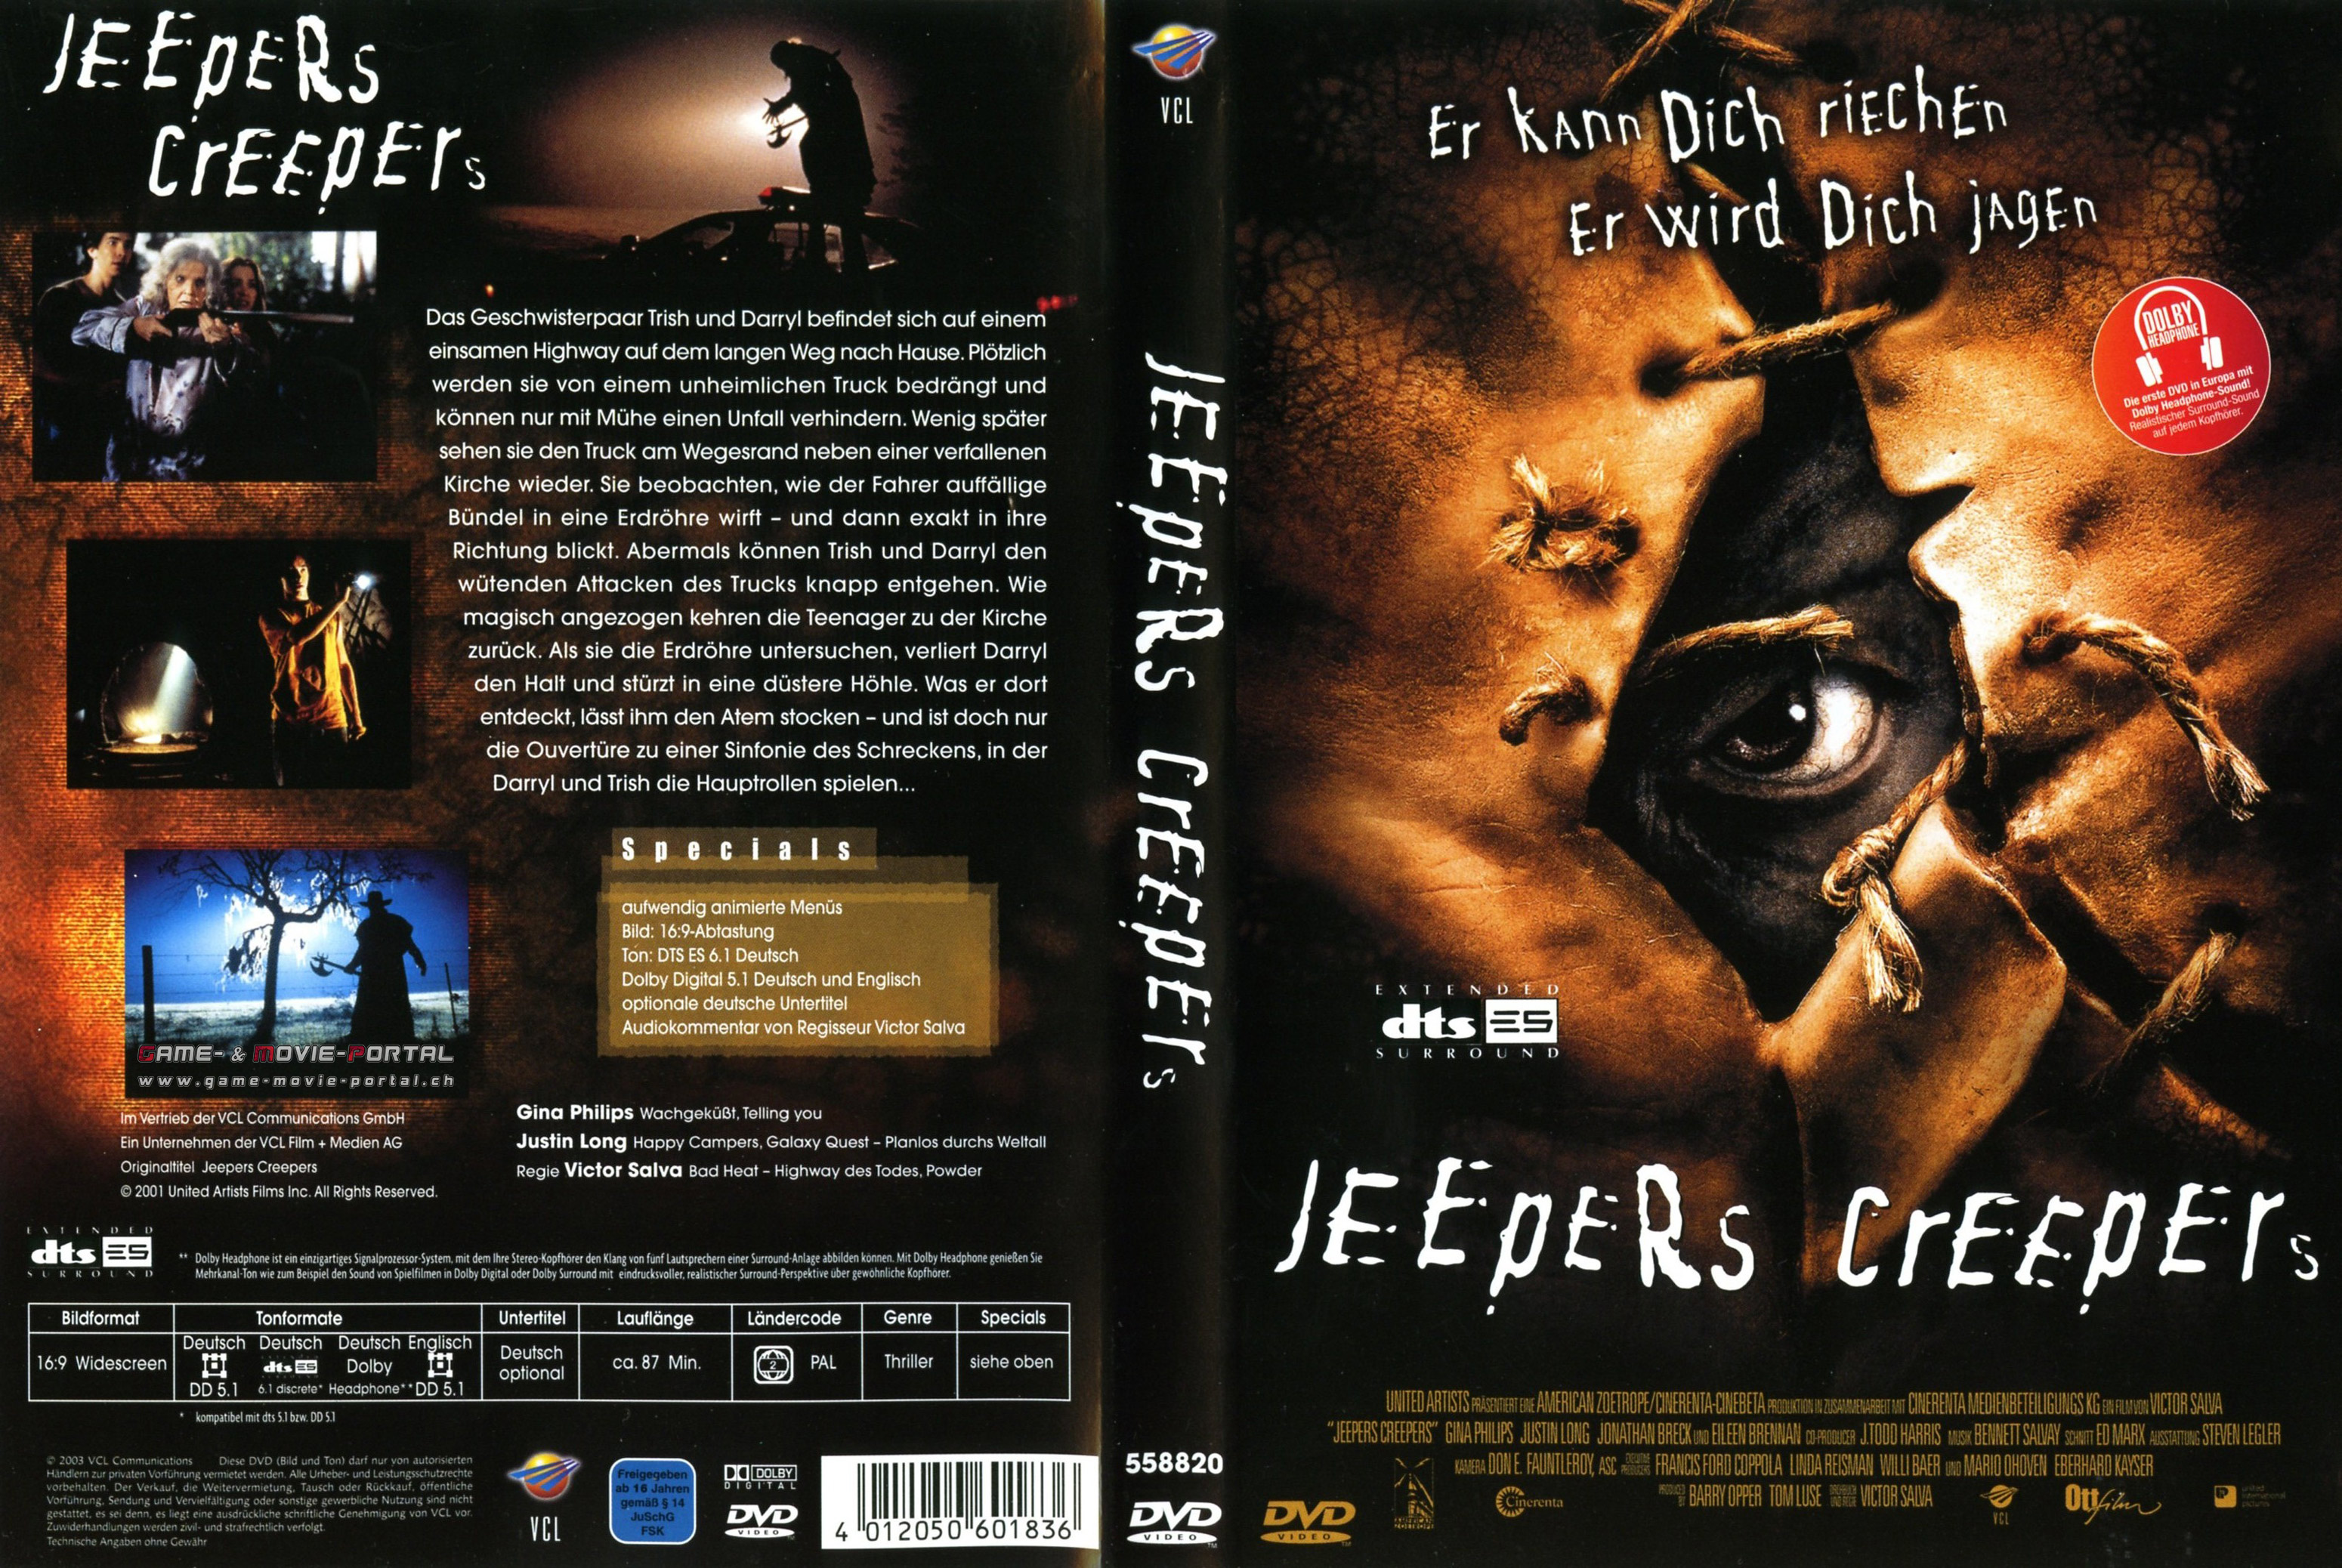 jeepers creepers full movie download